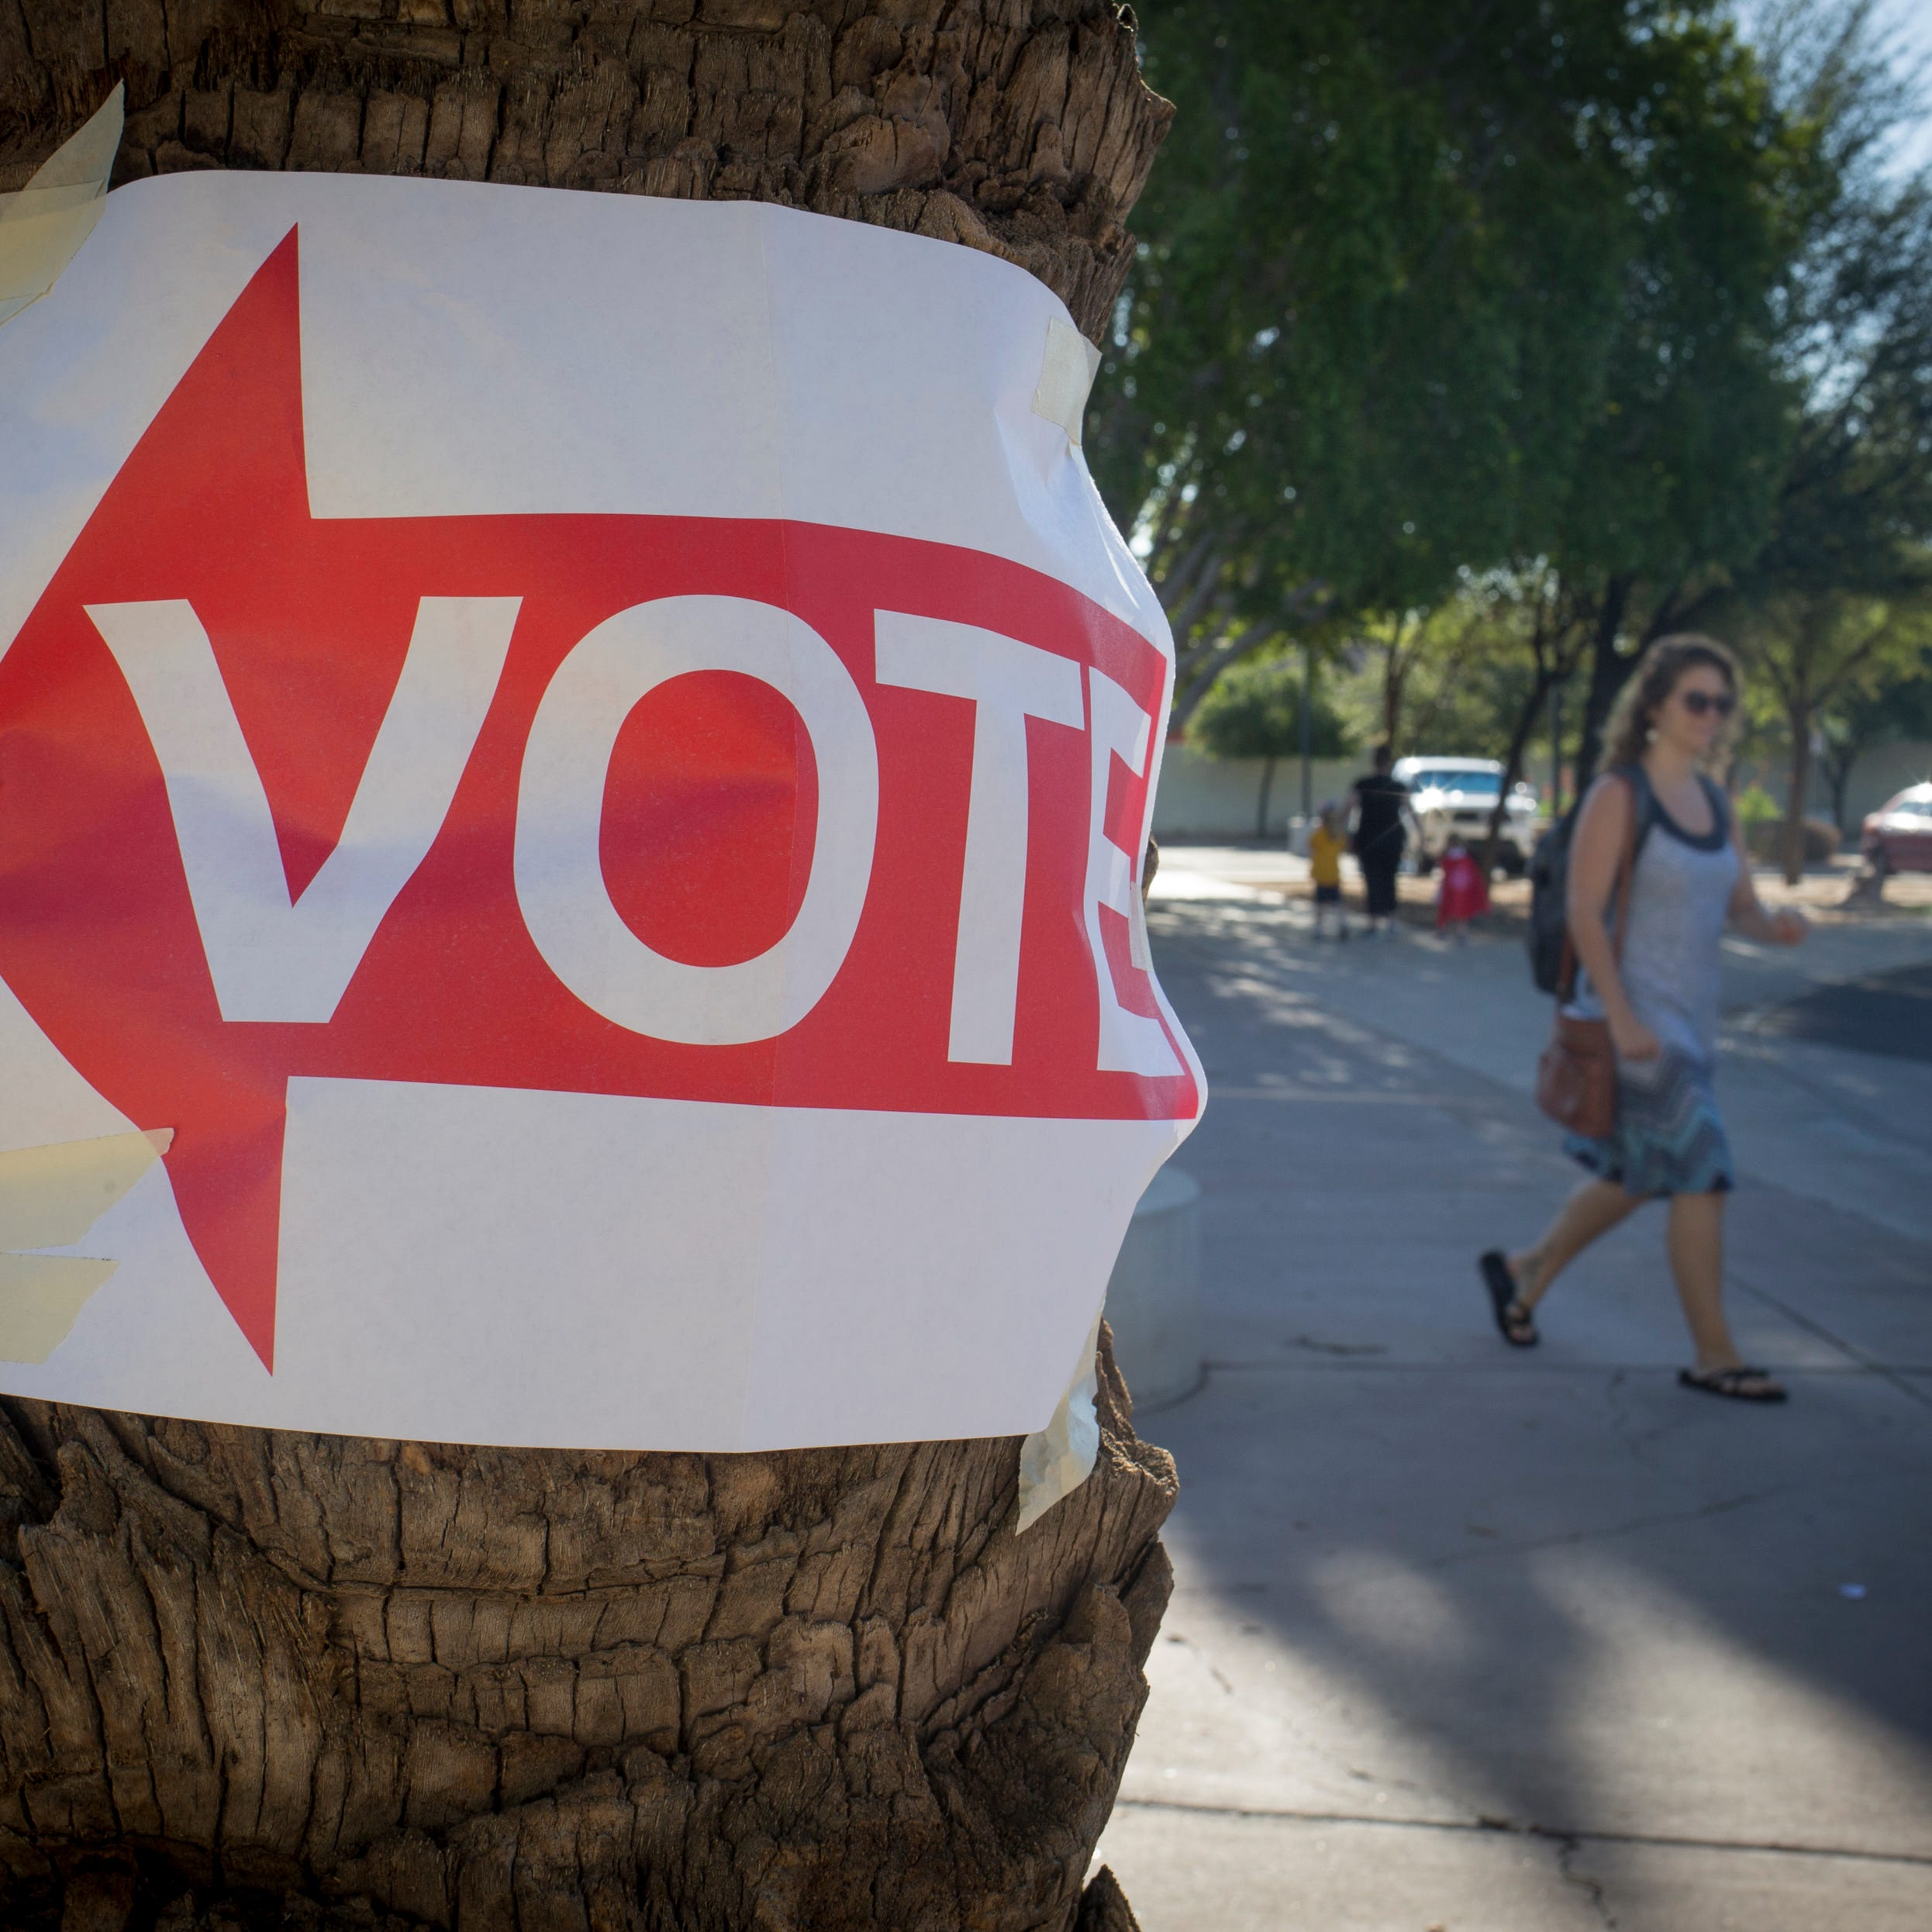 Bill makes getting paid to register voters a crime equal to domestic violence